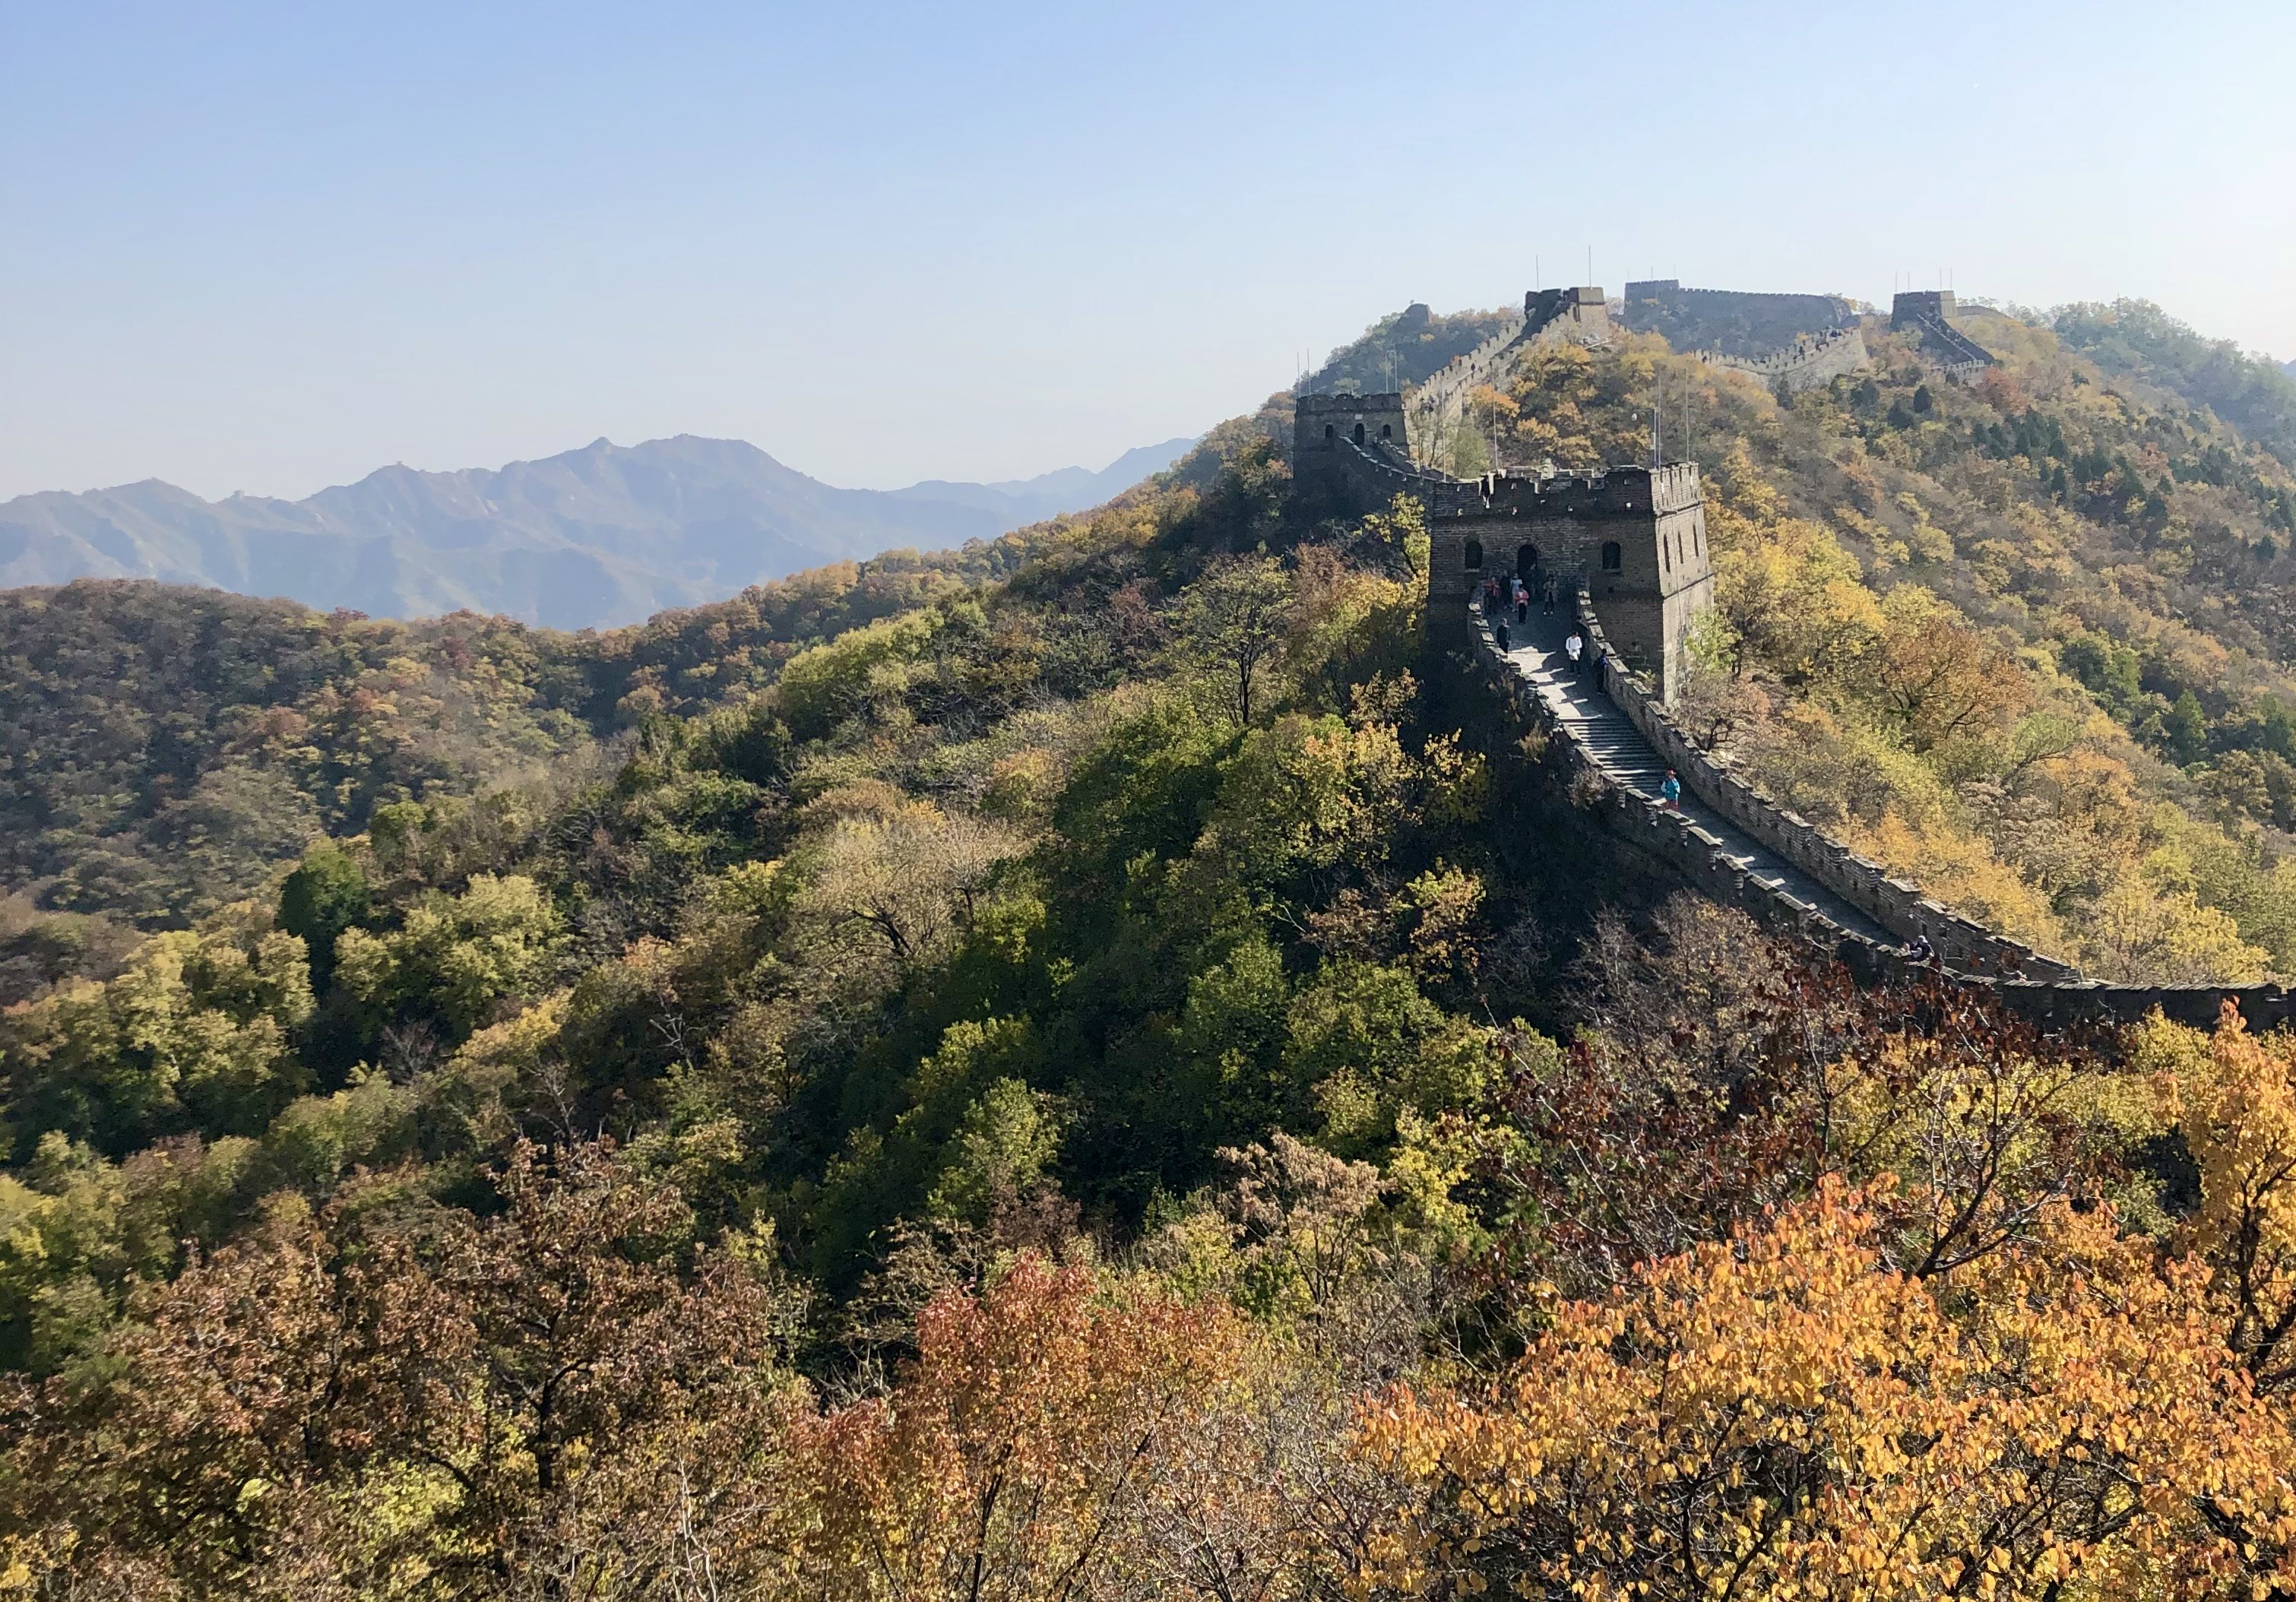 The Great Wall of China: Visiting One of the World's Seven Wonders